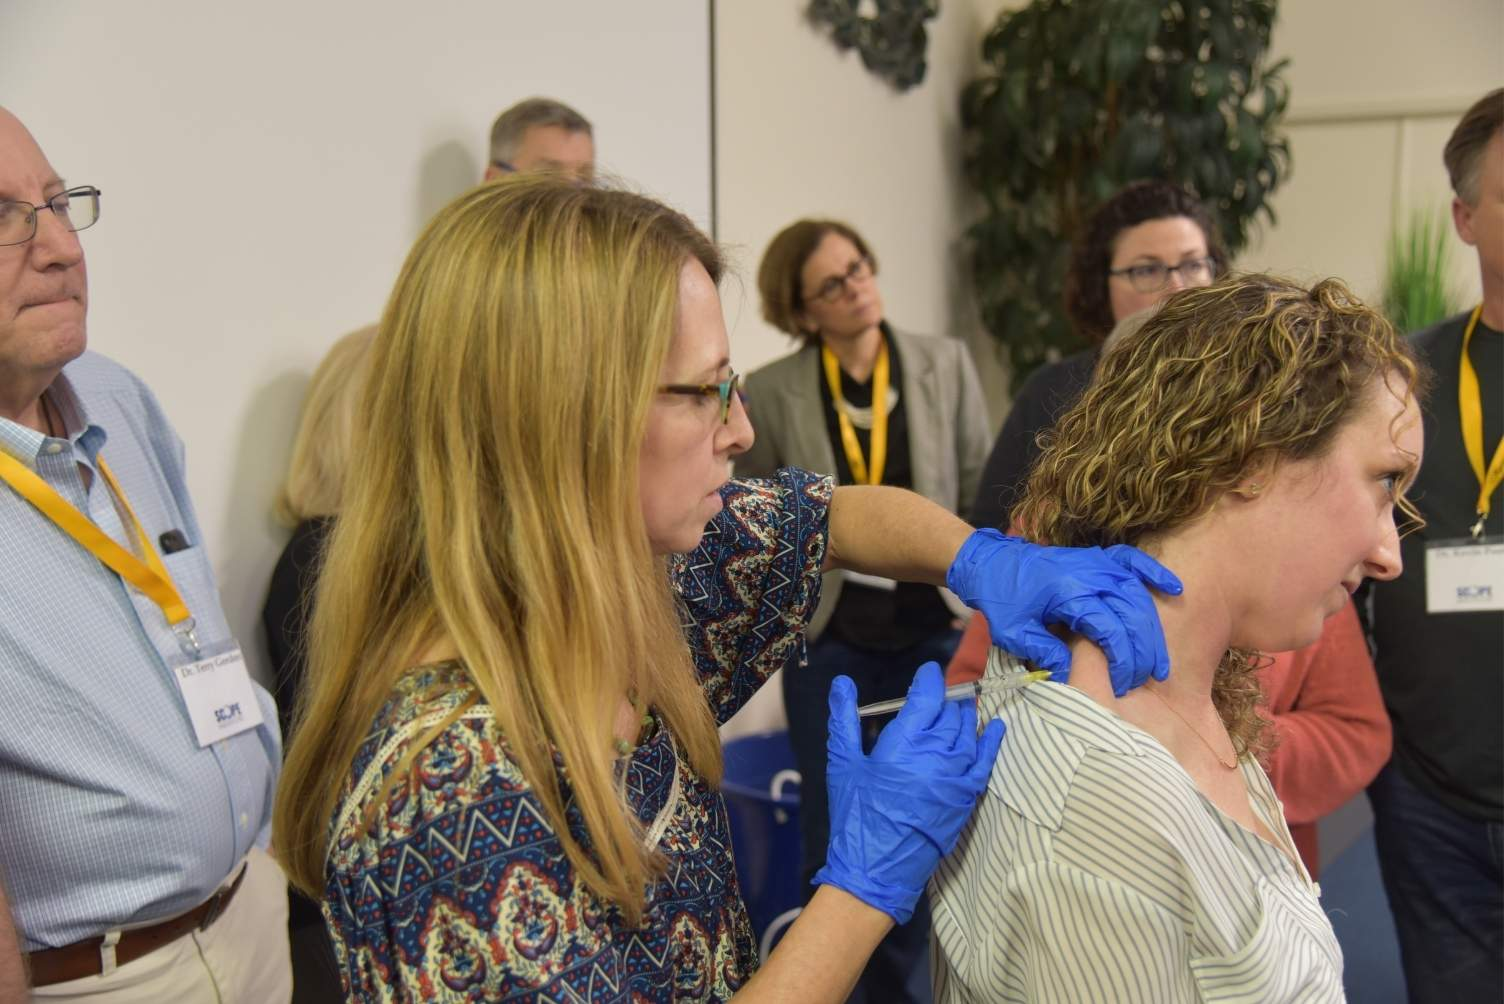 Hands-on training in administering trigger point injections for TMD treatment